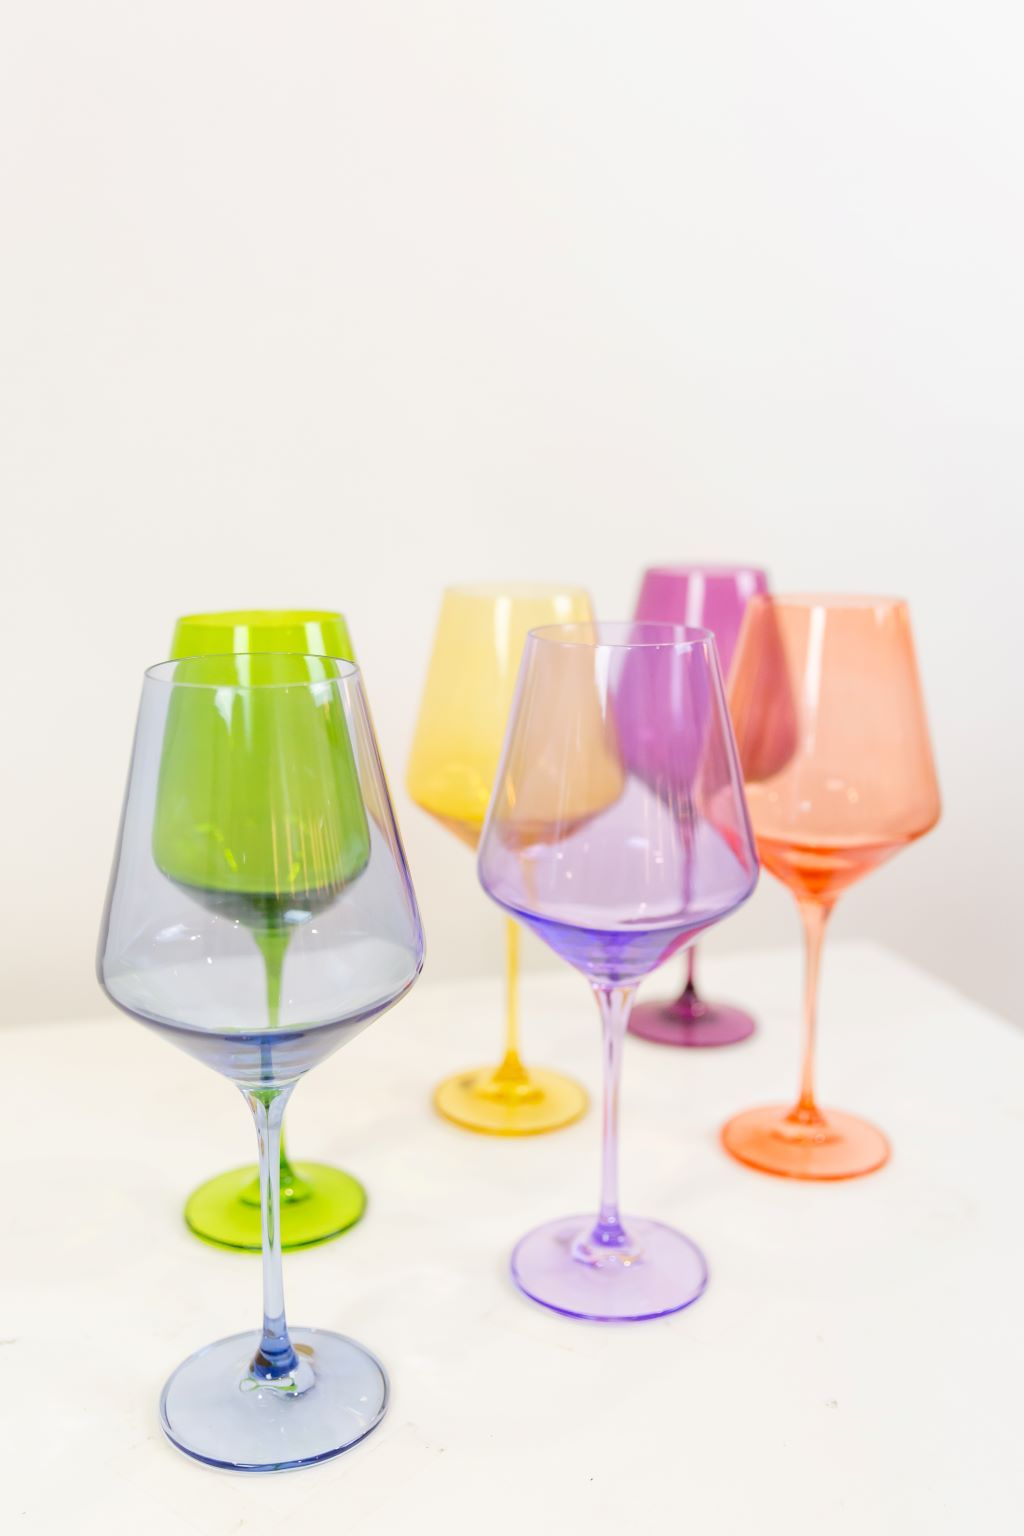 Six colorful wine glasses.